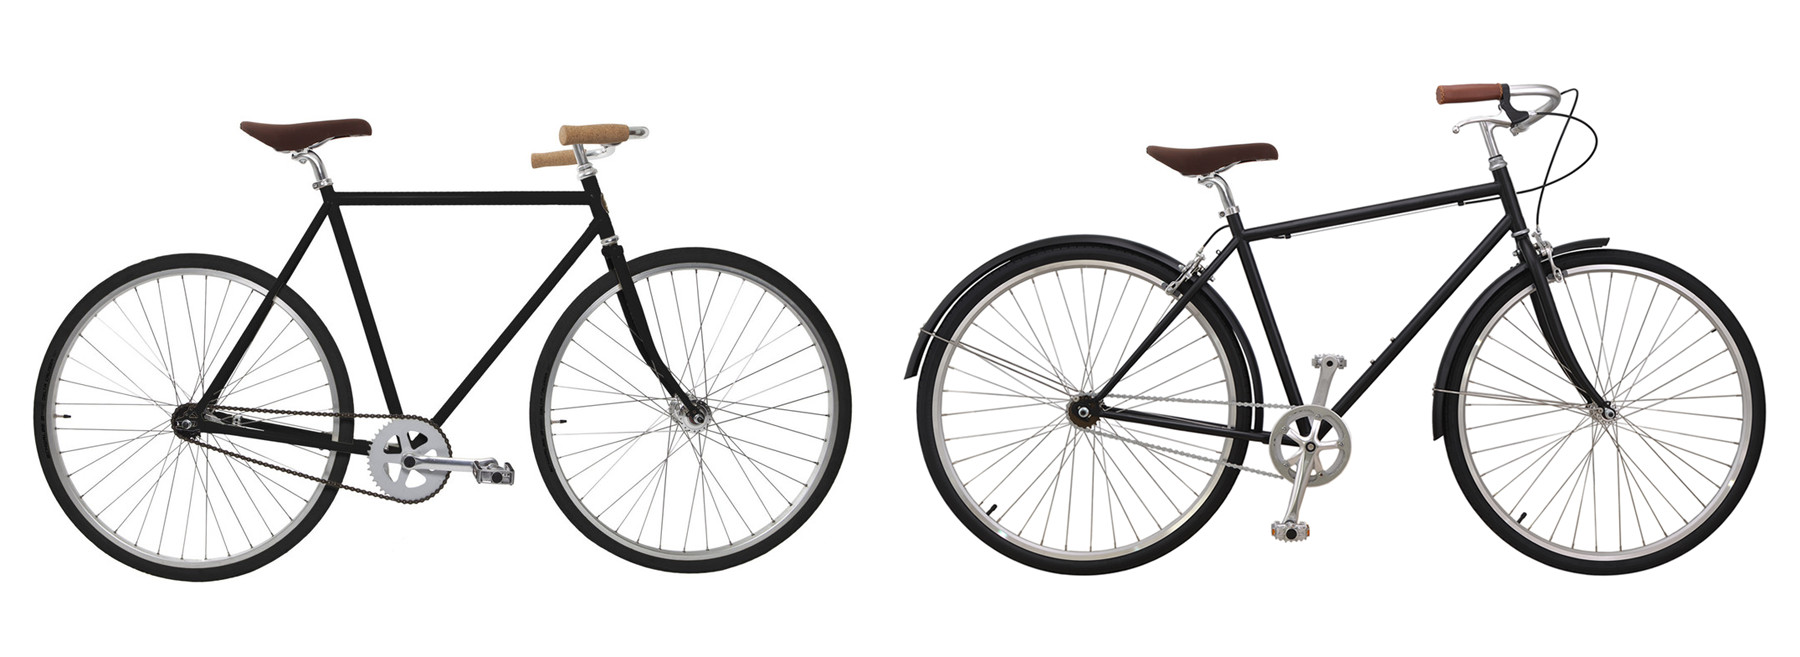 My New Custom \'Chief\' from Heritage Bicycles – George Hahn